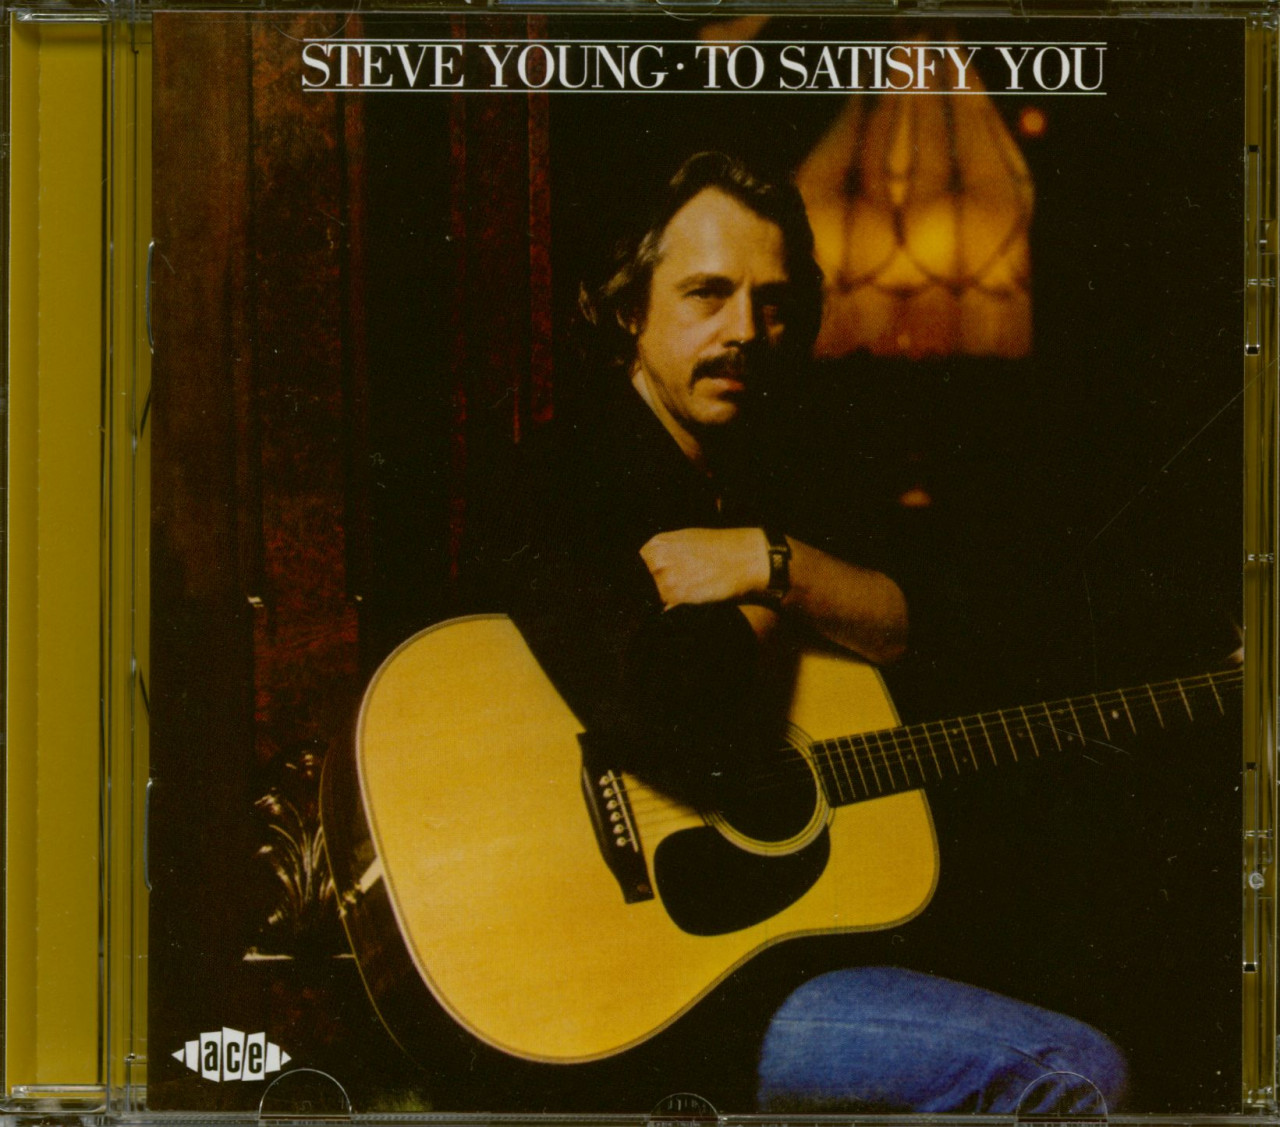 Steve Young - To Satisfy You (CD)